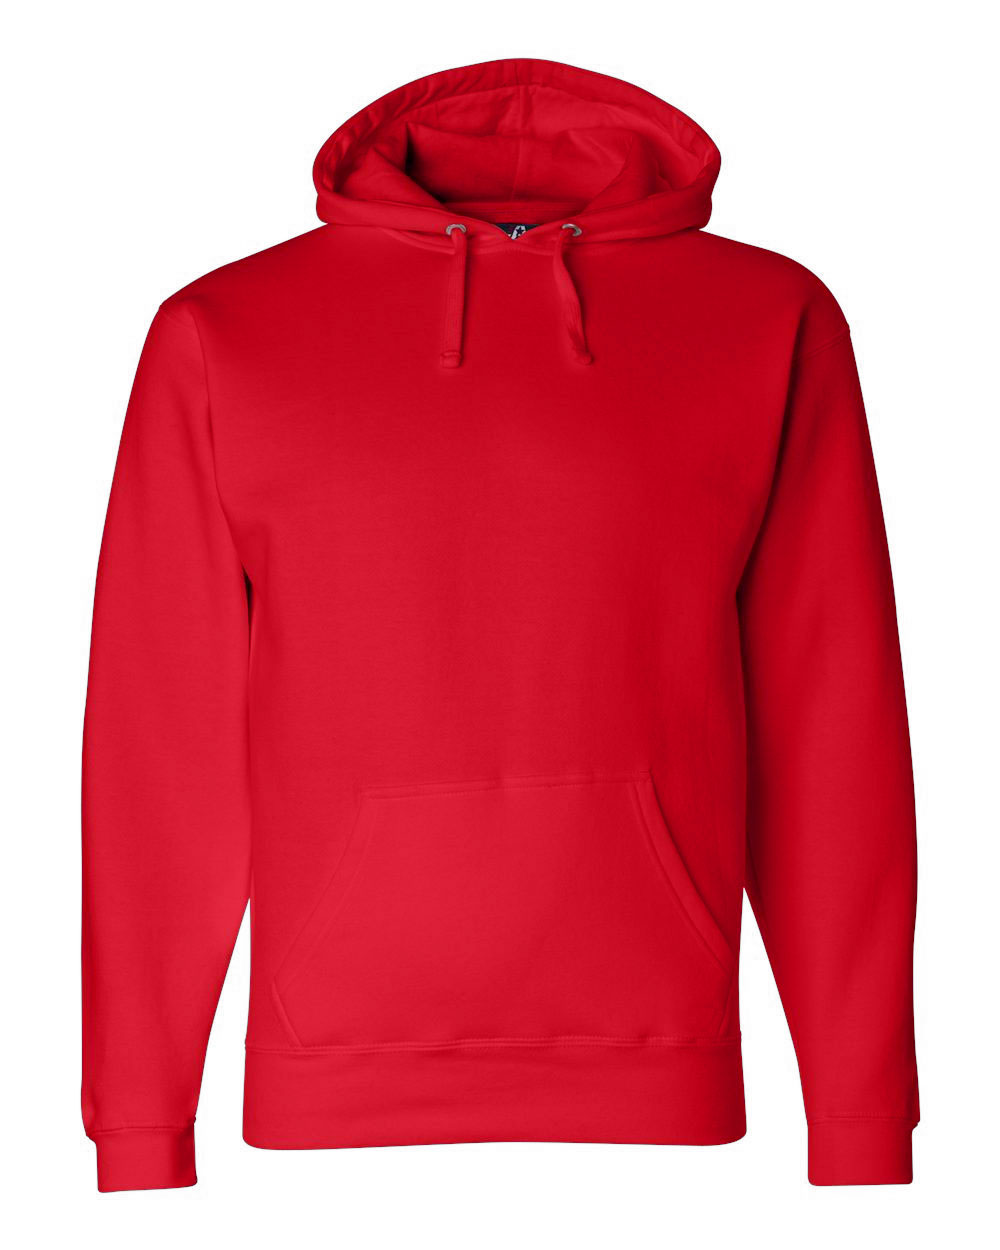 J. America Adult  Premium Hooded Sweatshirt